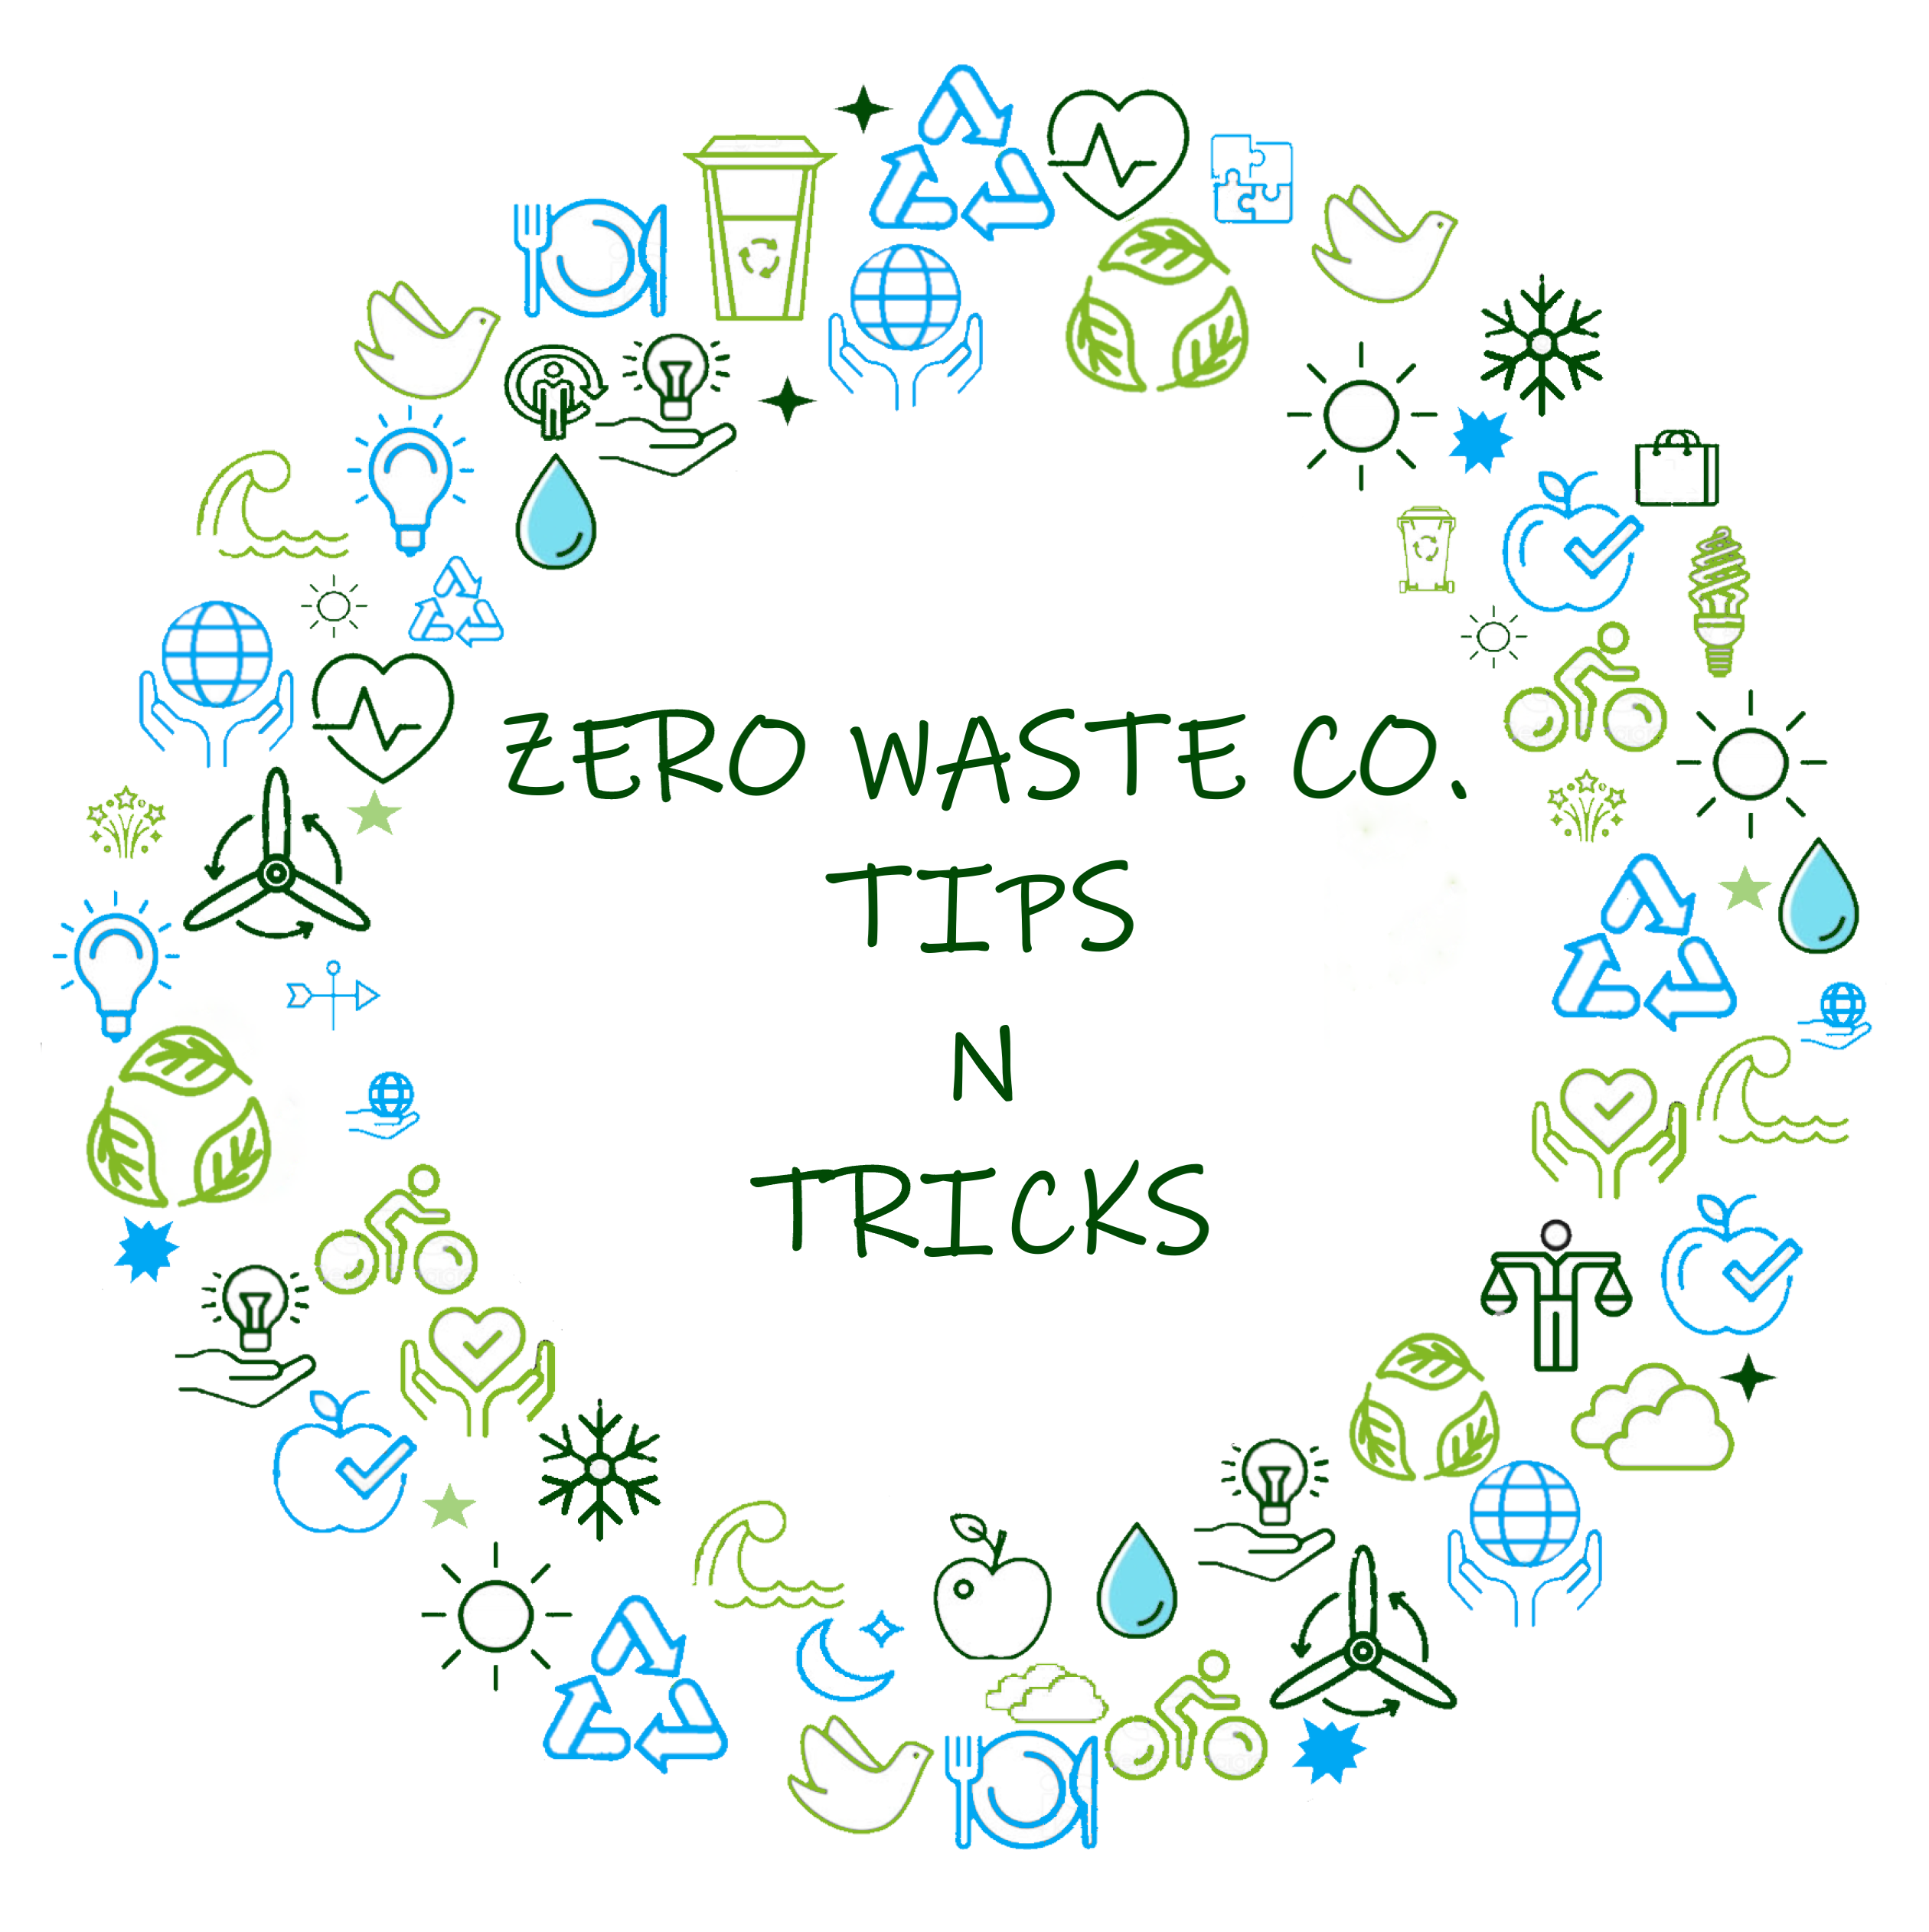 Zero Waste Tips N Tricks